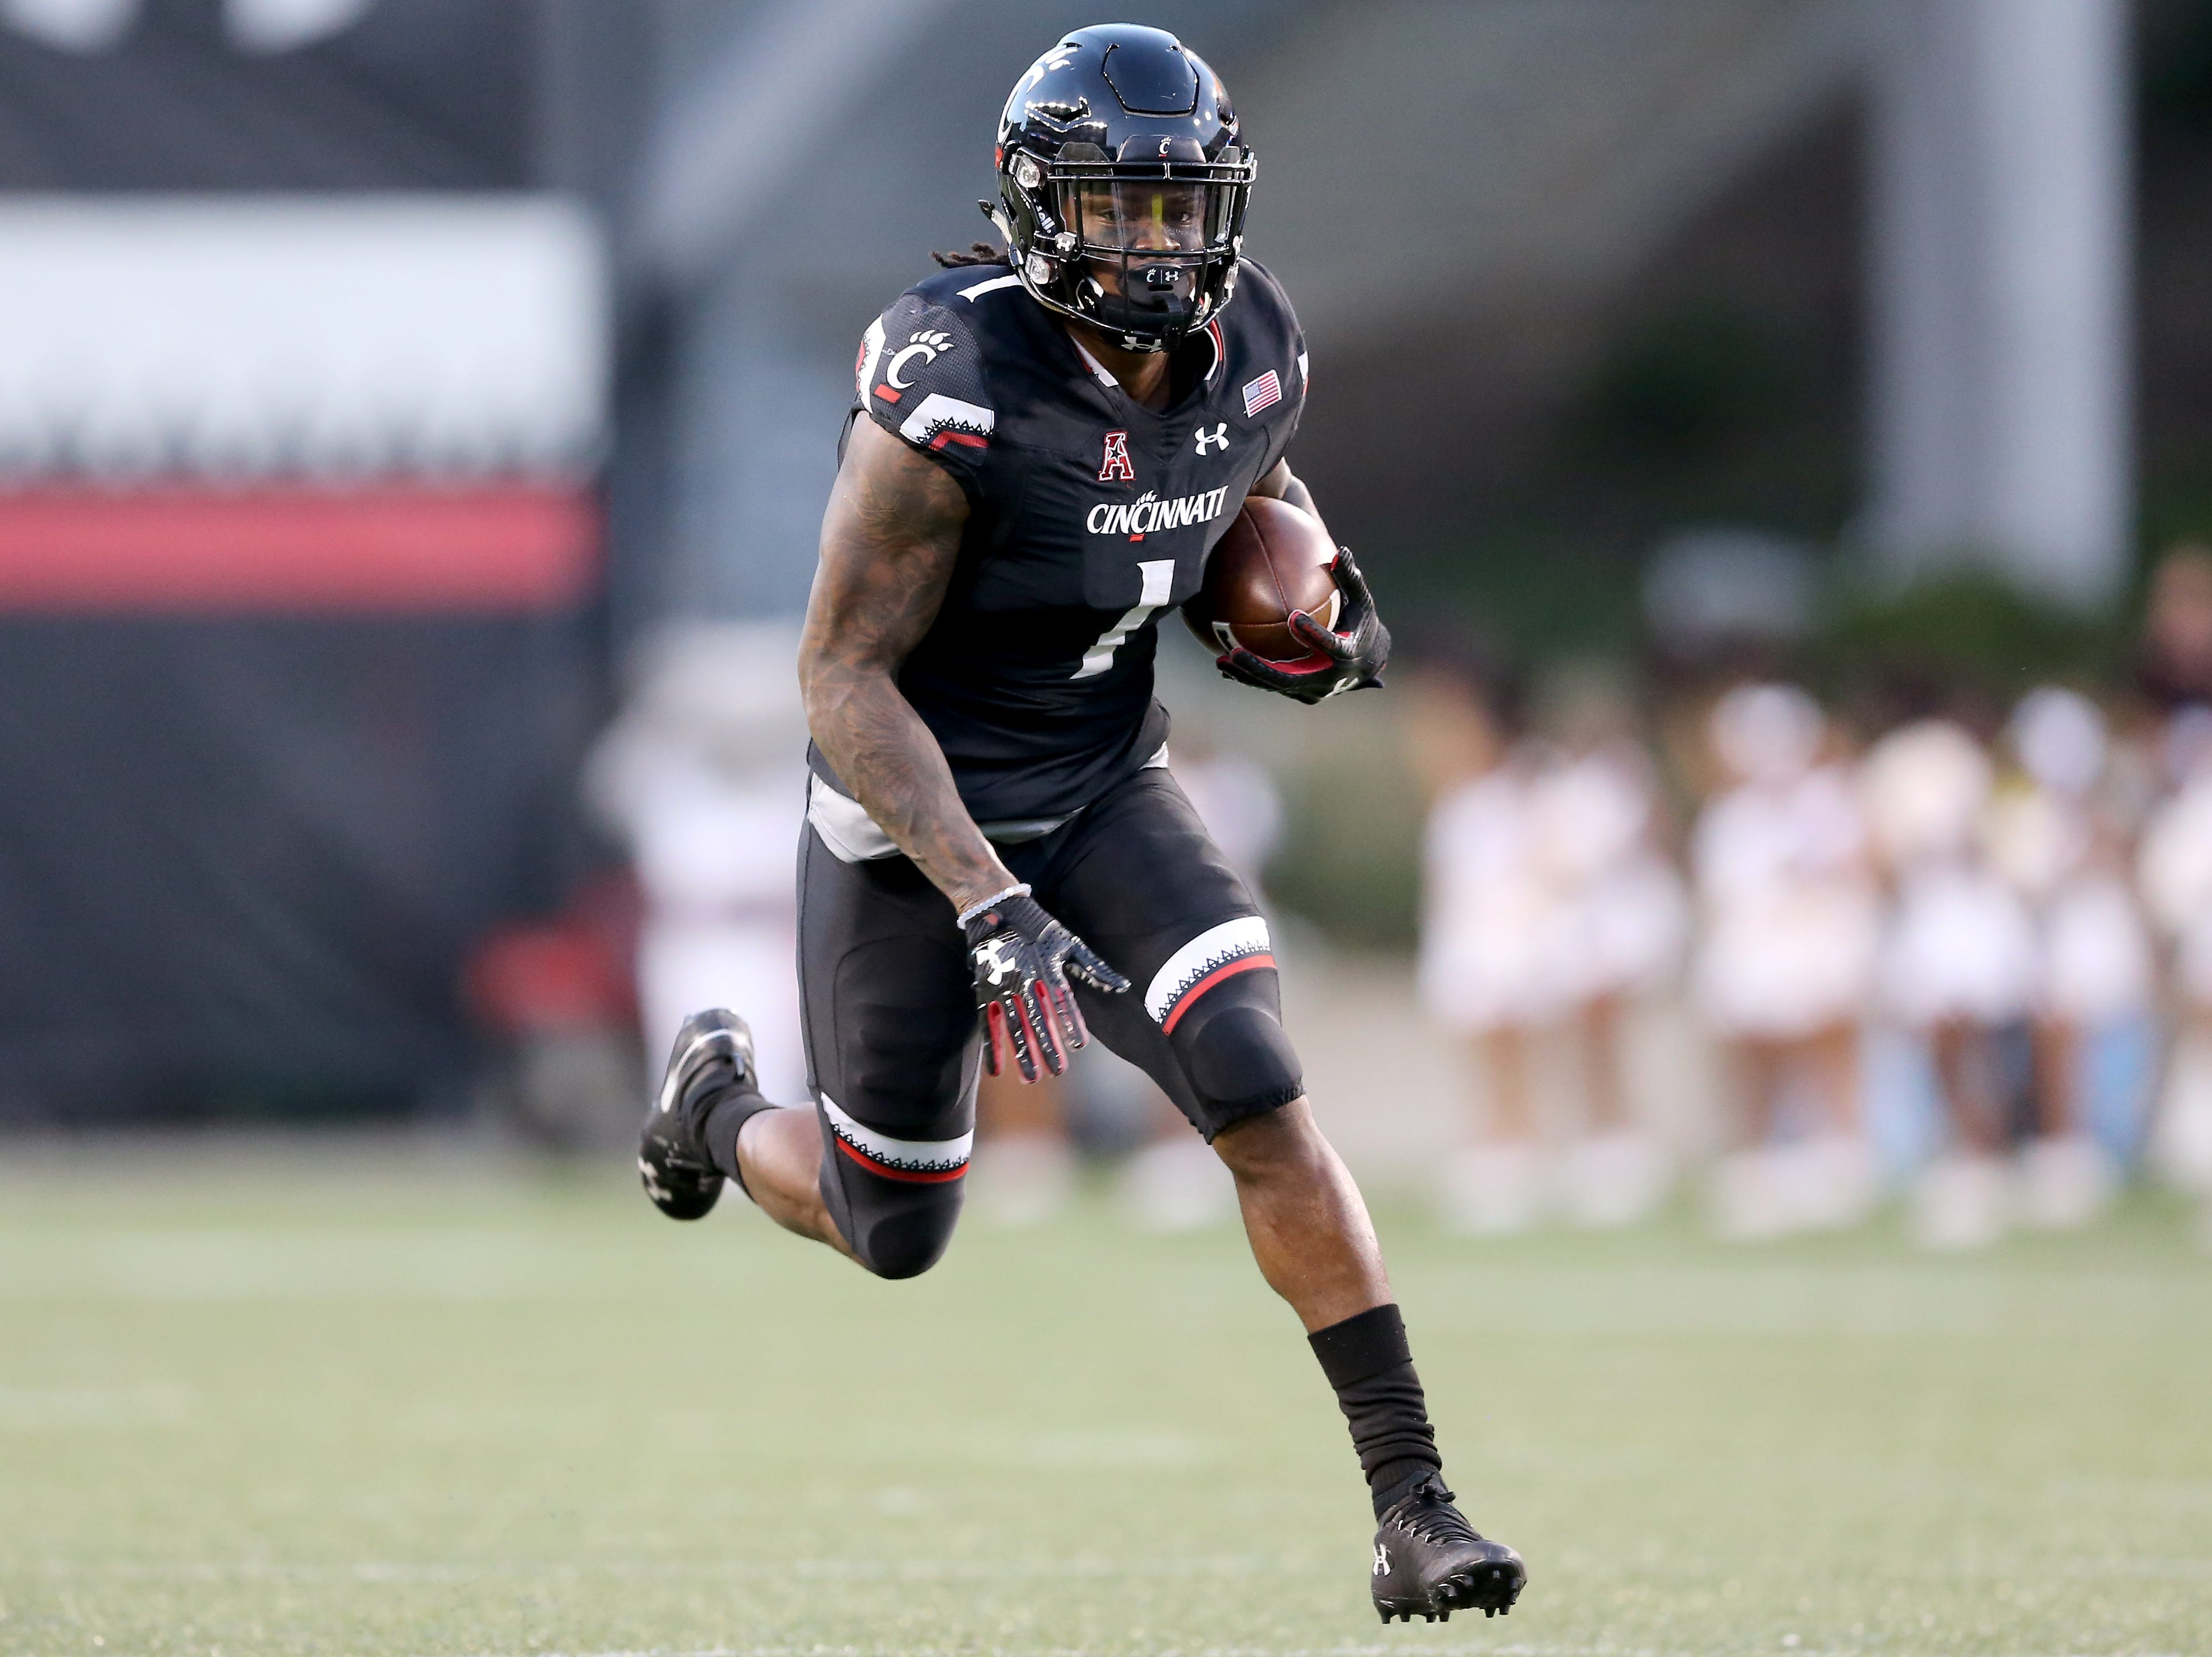 Cincinnati Bearcats wide receiver Kahlil Lewis (1) scores a touchdown in the first quarter during a college football game between the Cincinnati Bearcats and the Alabama A&M Bulldogs, Saturday, Sept. 15, 2018, at Nippert Stadium in Cincinnati.